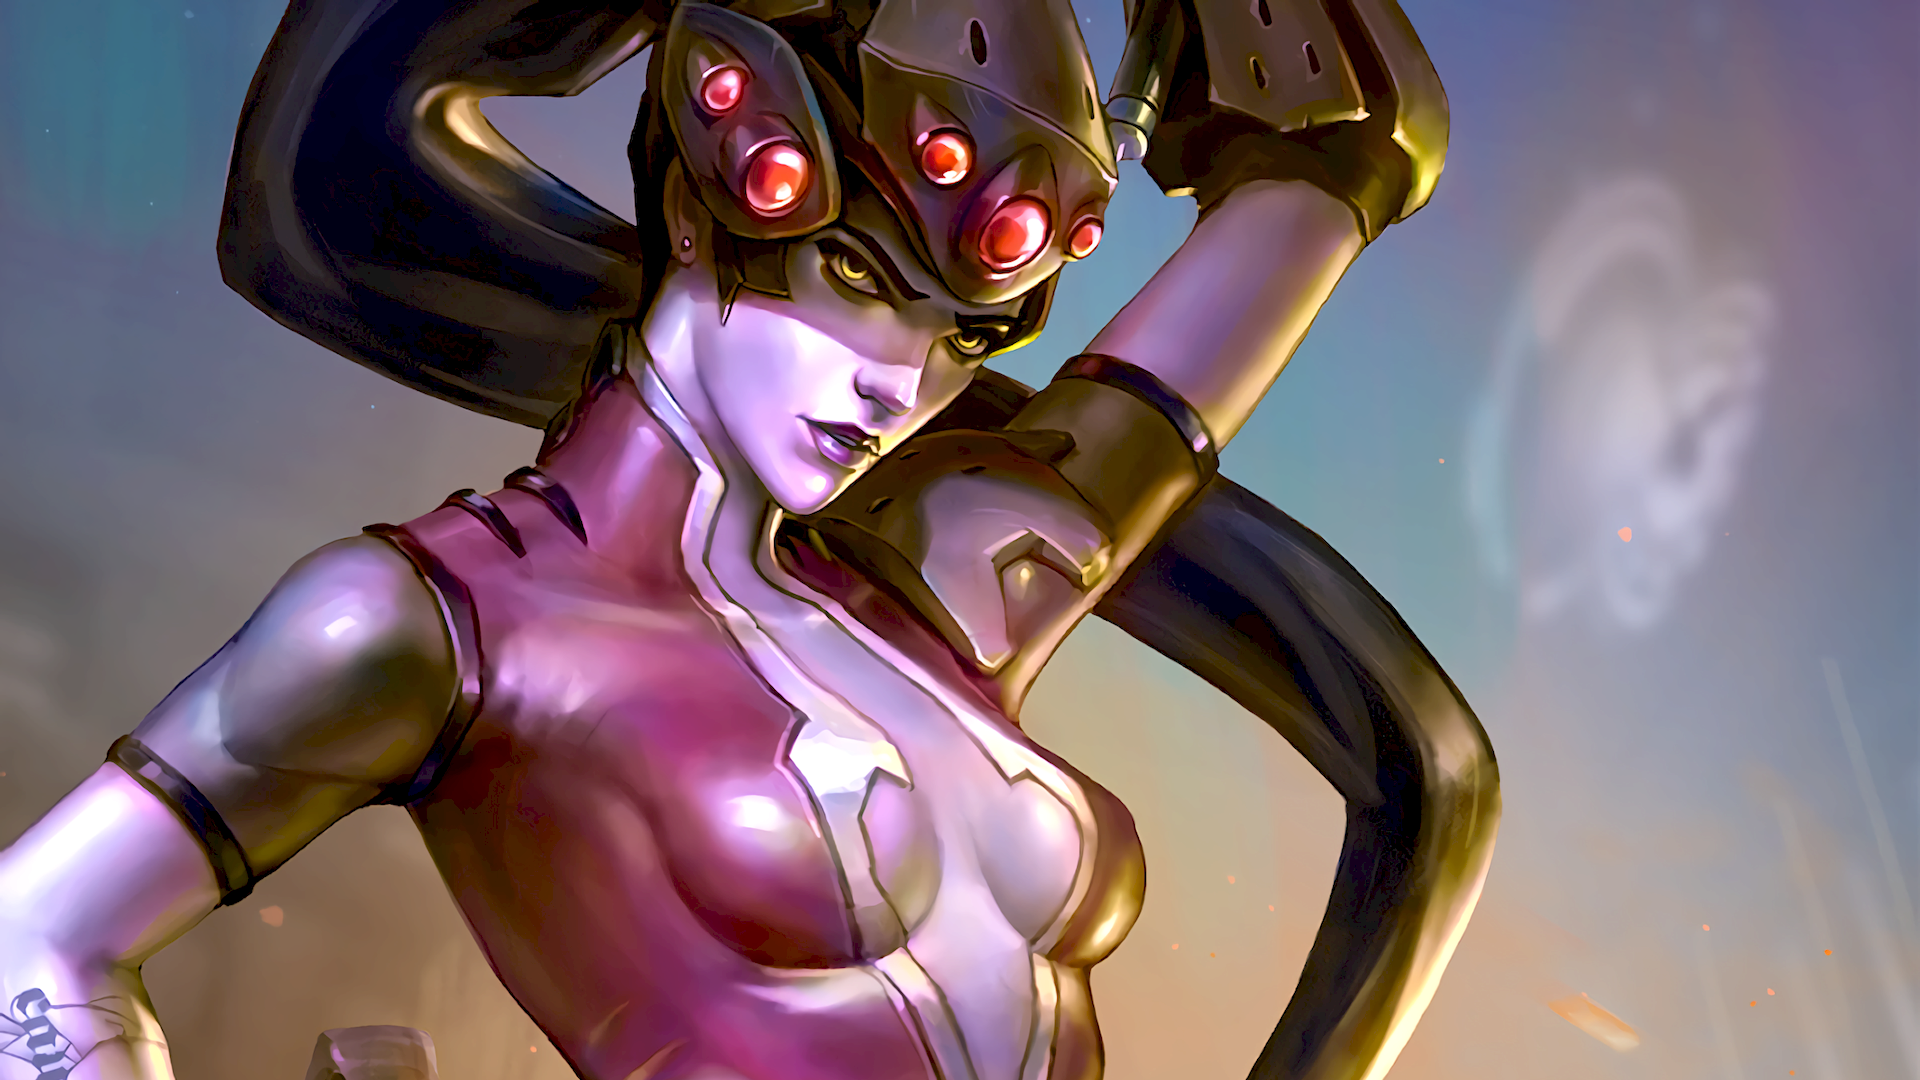 widowmaker overwatch wallpaper 1920x1080 - photo #48